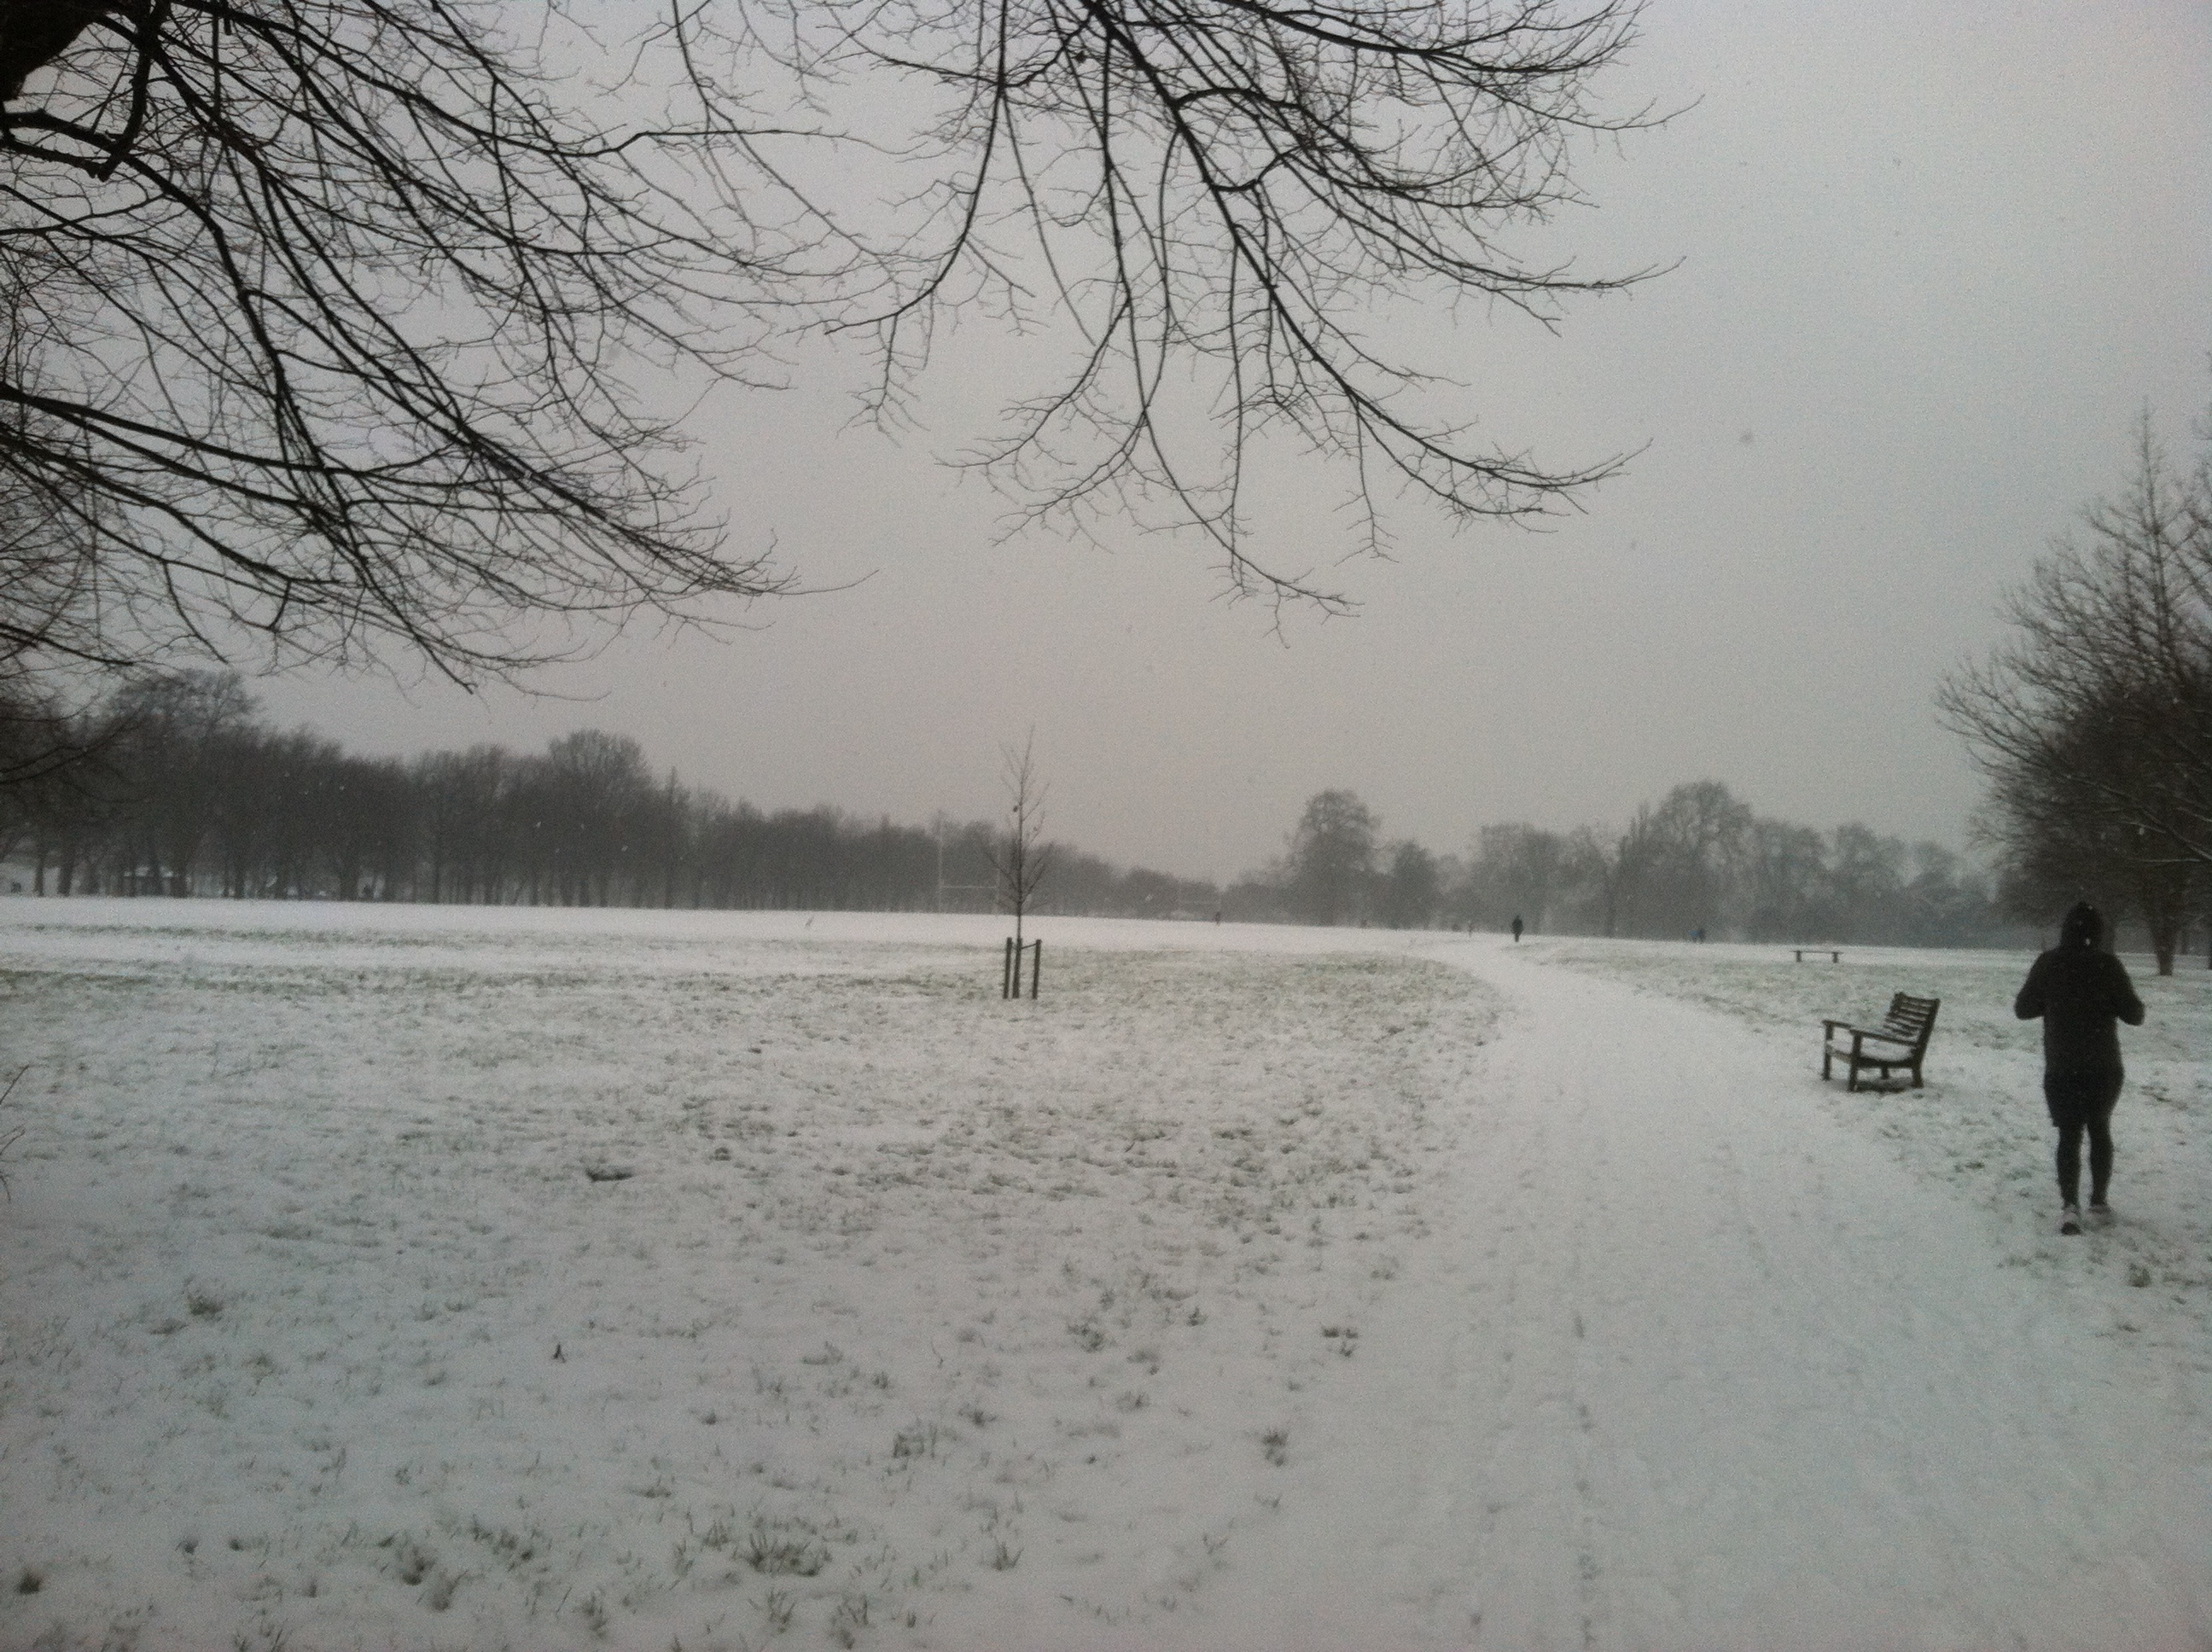 I arrived in London for a business trip to snow. This is Regents Park blanketed in about an inch of fluffy white.